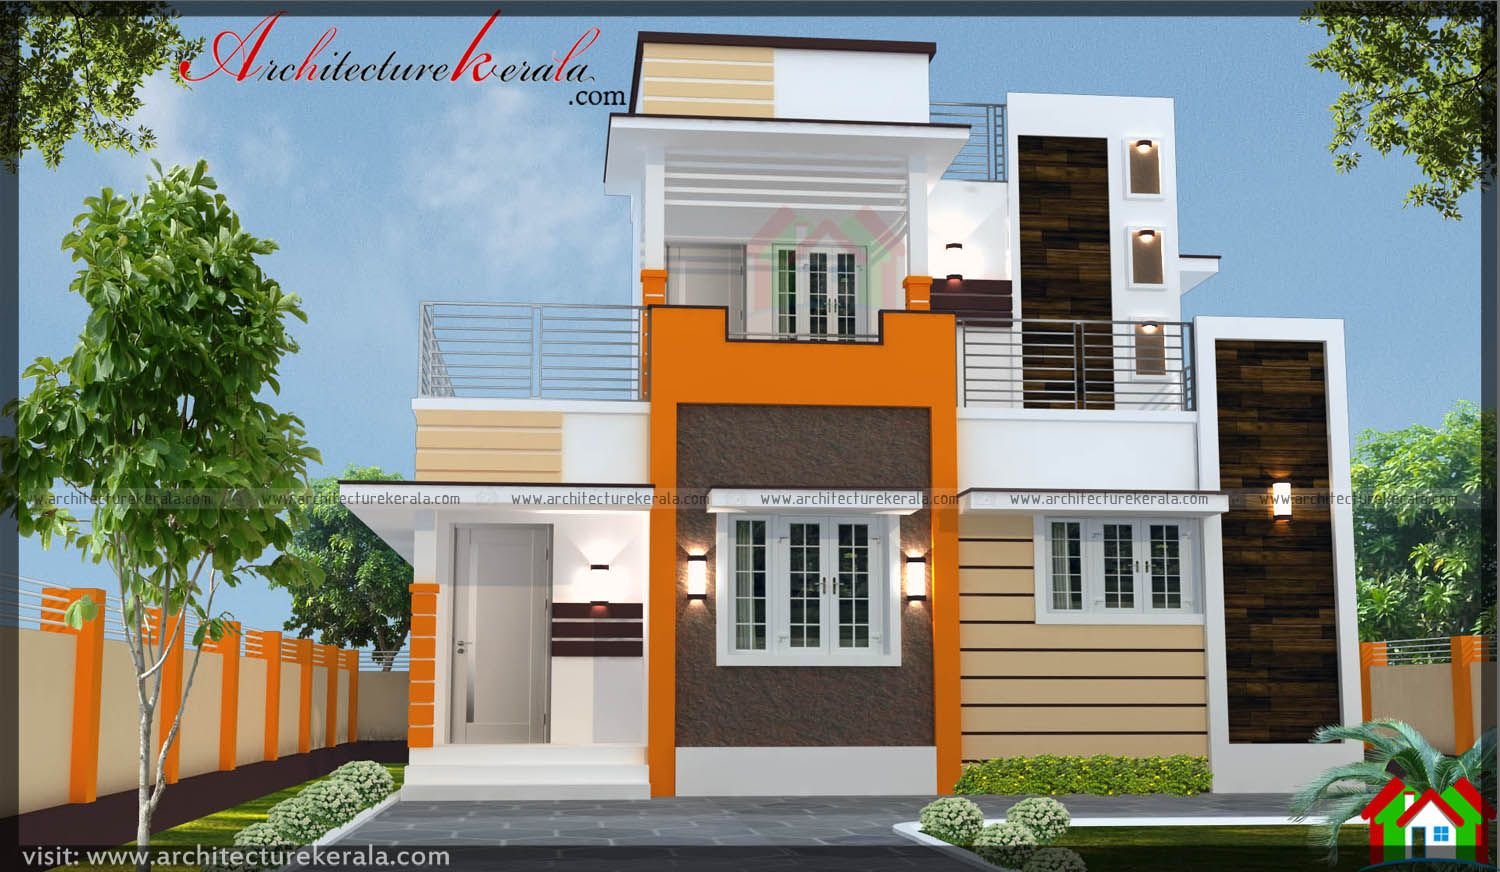 1300 Sq Ft House Plan And Contemporary Style Elevation Separate Drawing And Dining Three Bedrooms With Attached Contemporary House Indian House Plans House